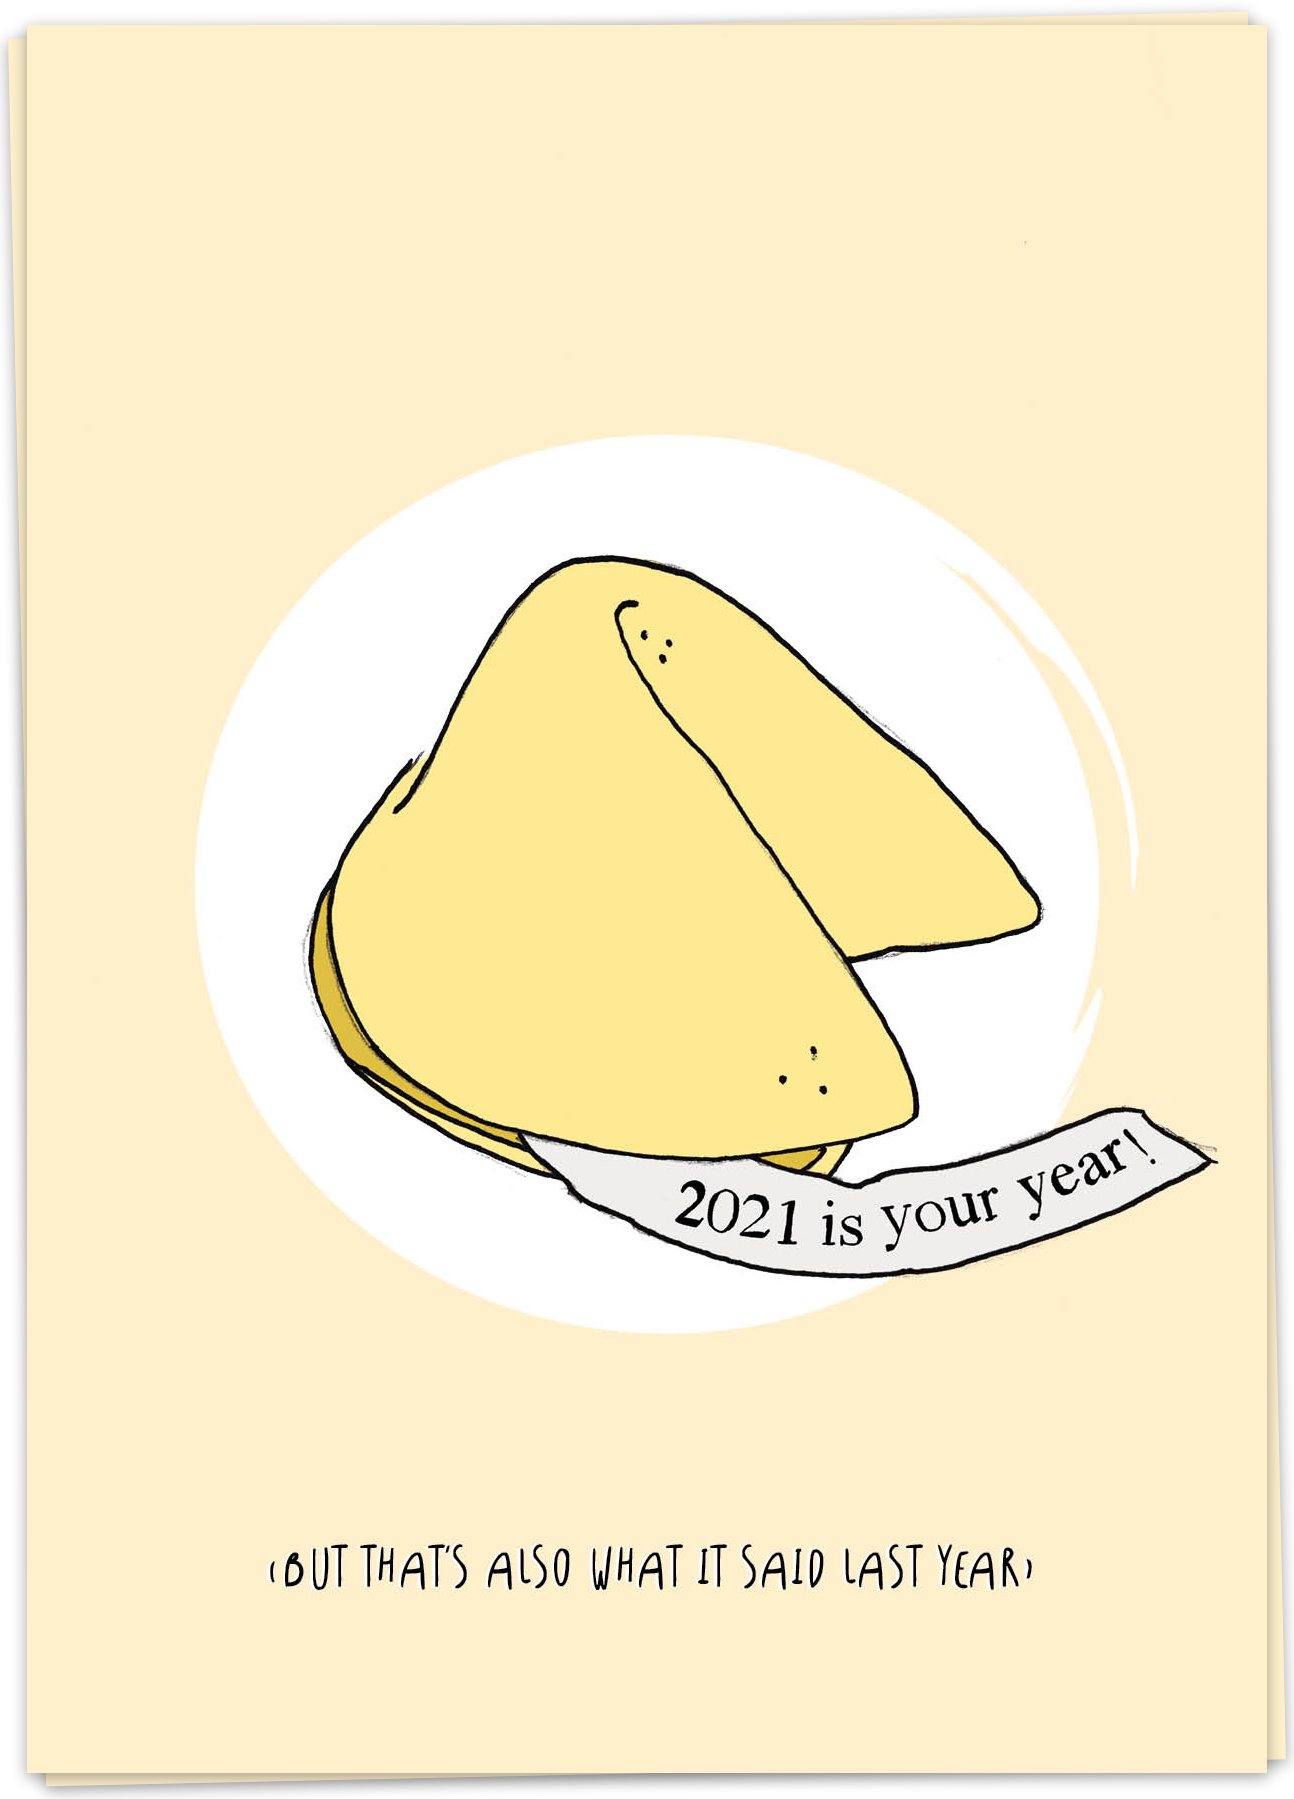 2021 fortune cookie